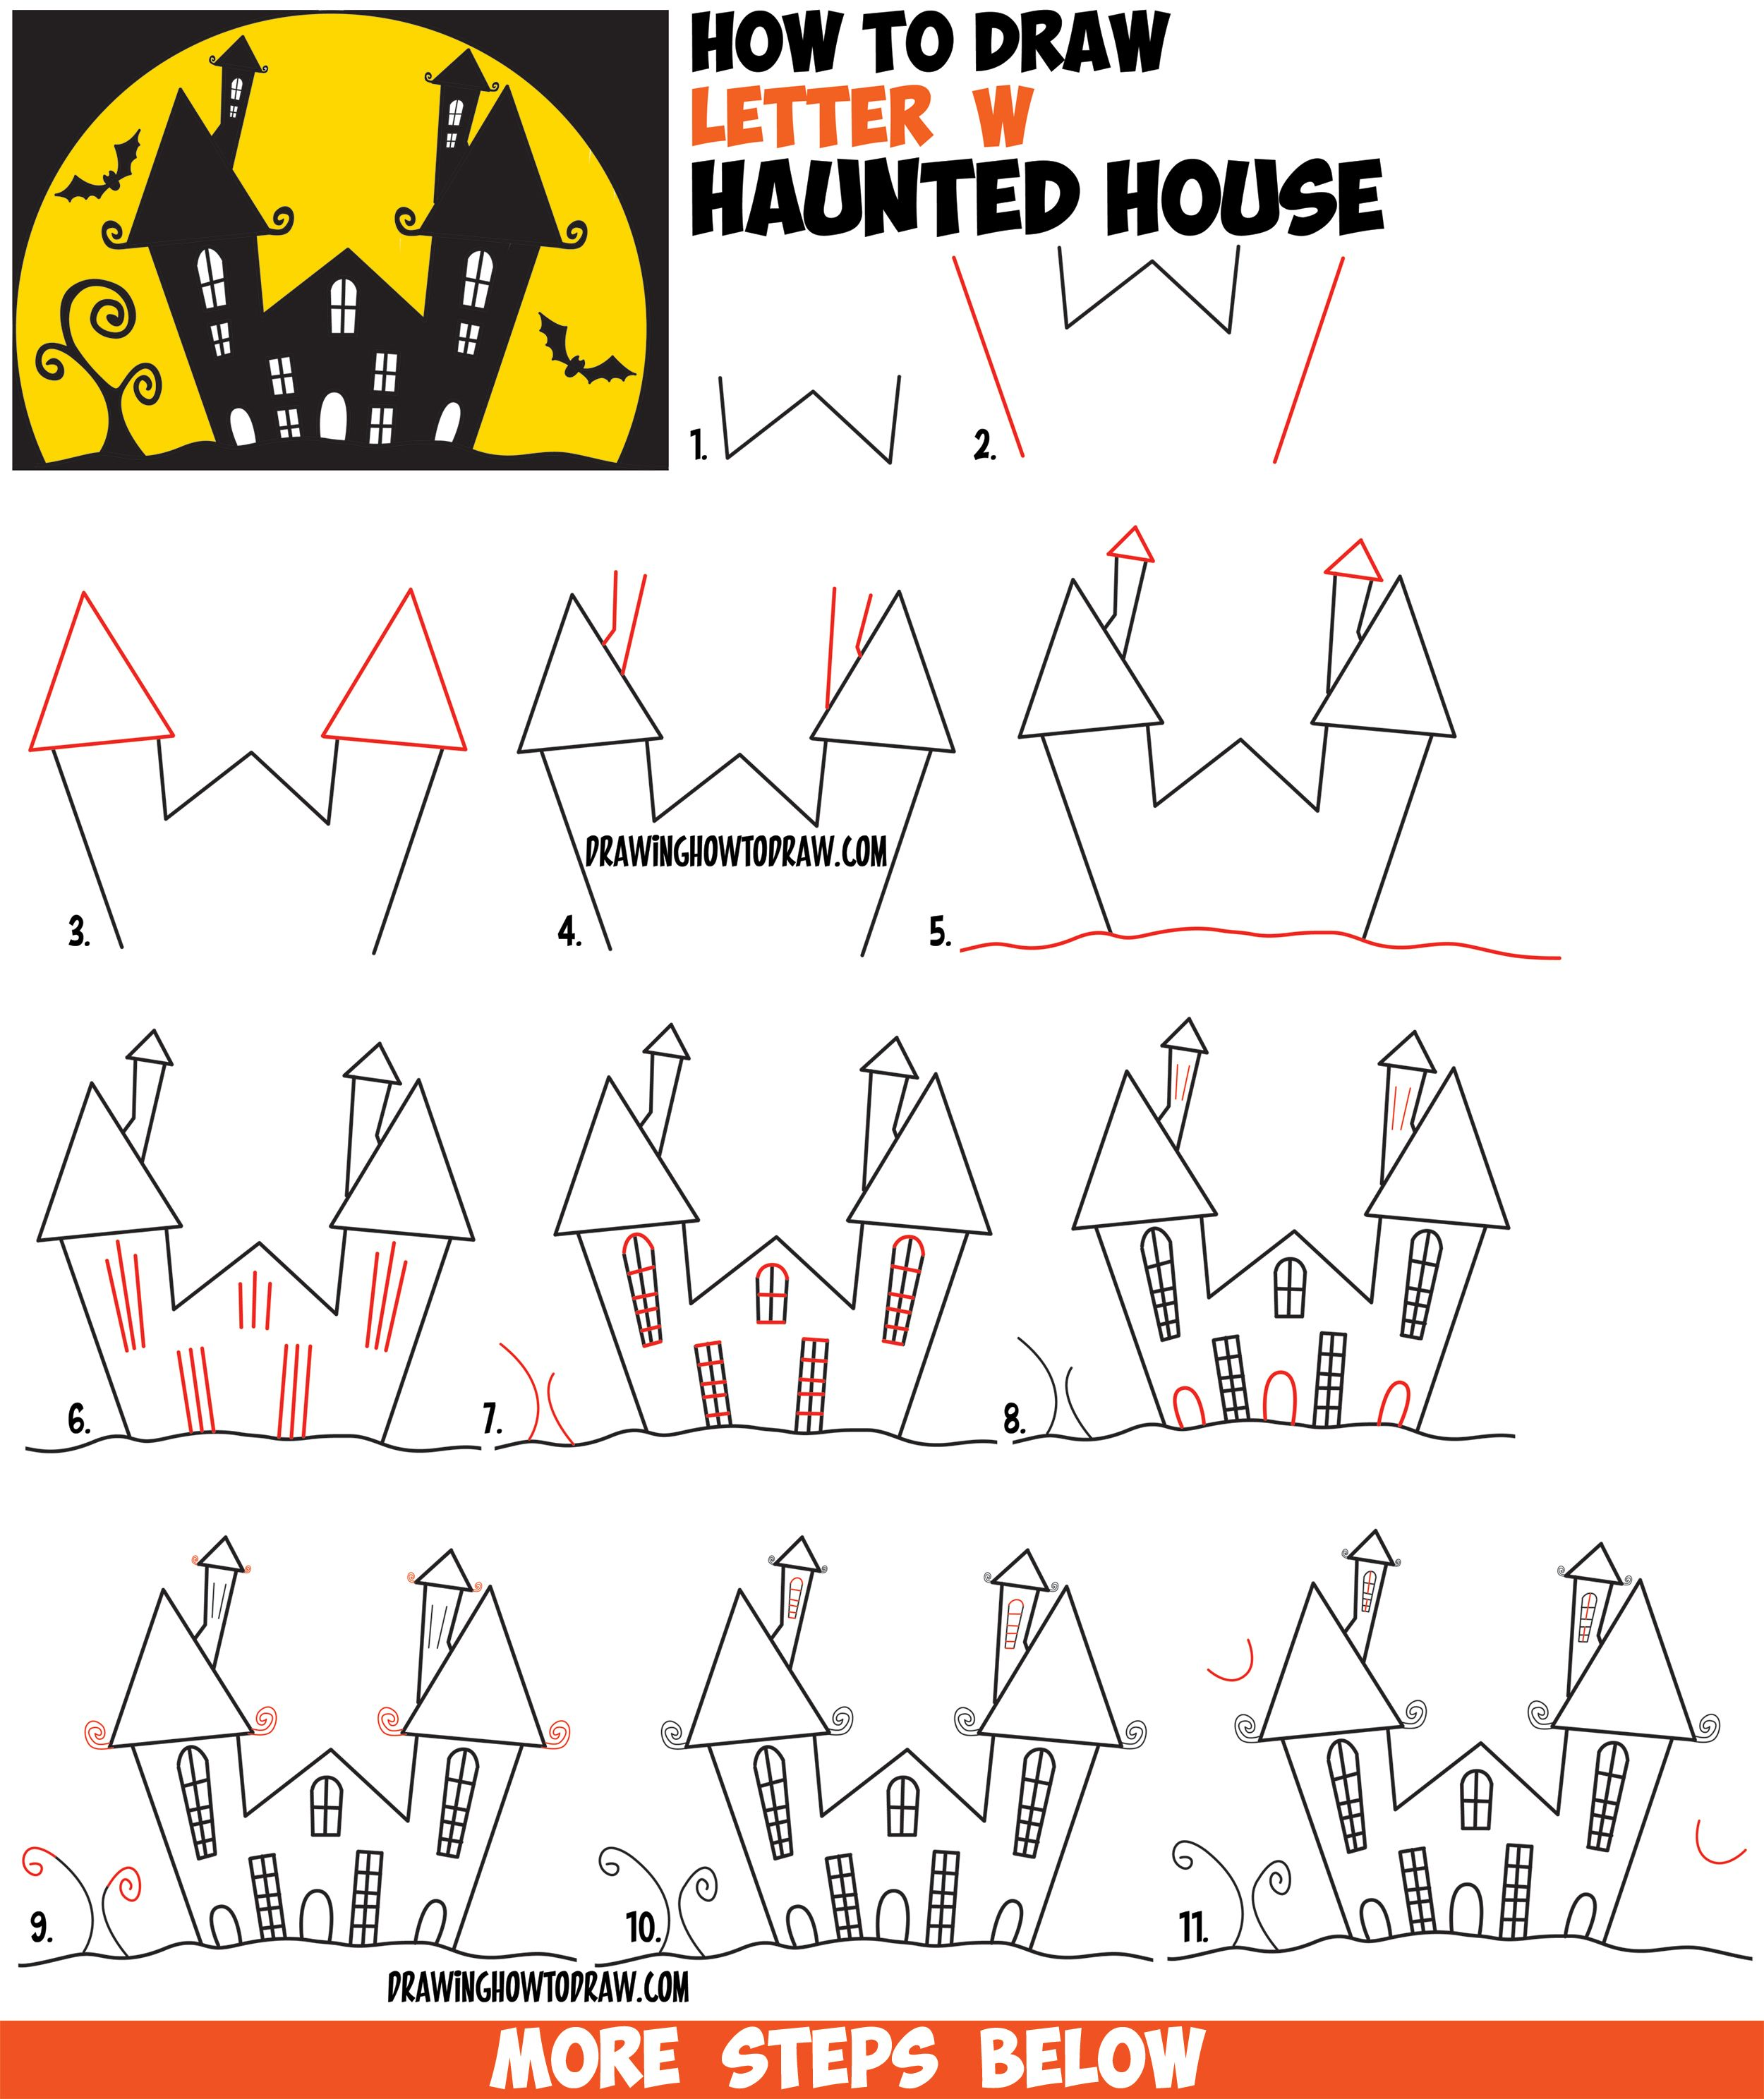 How to draw a cartoon haunted house step by step in Haunted house drawing ideas